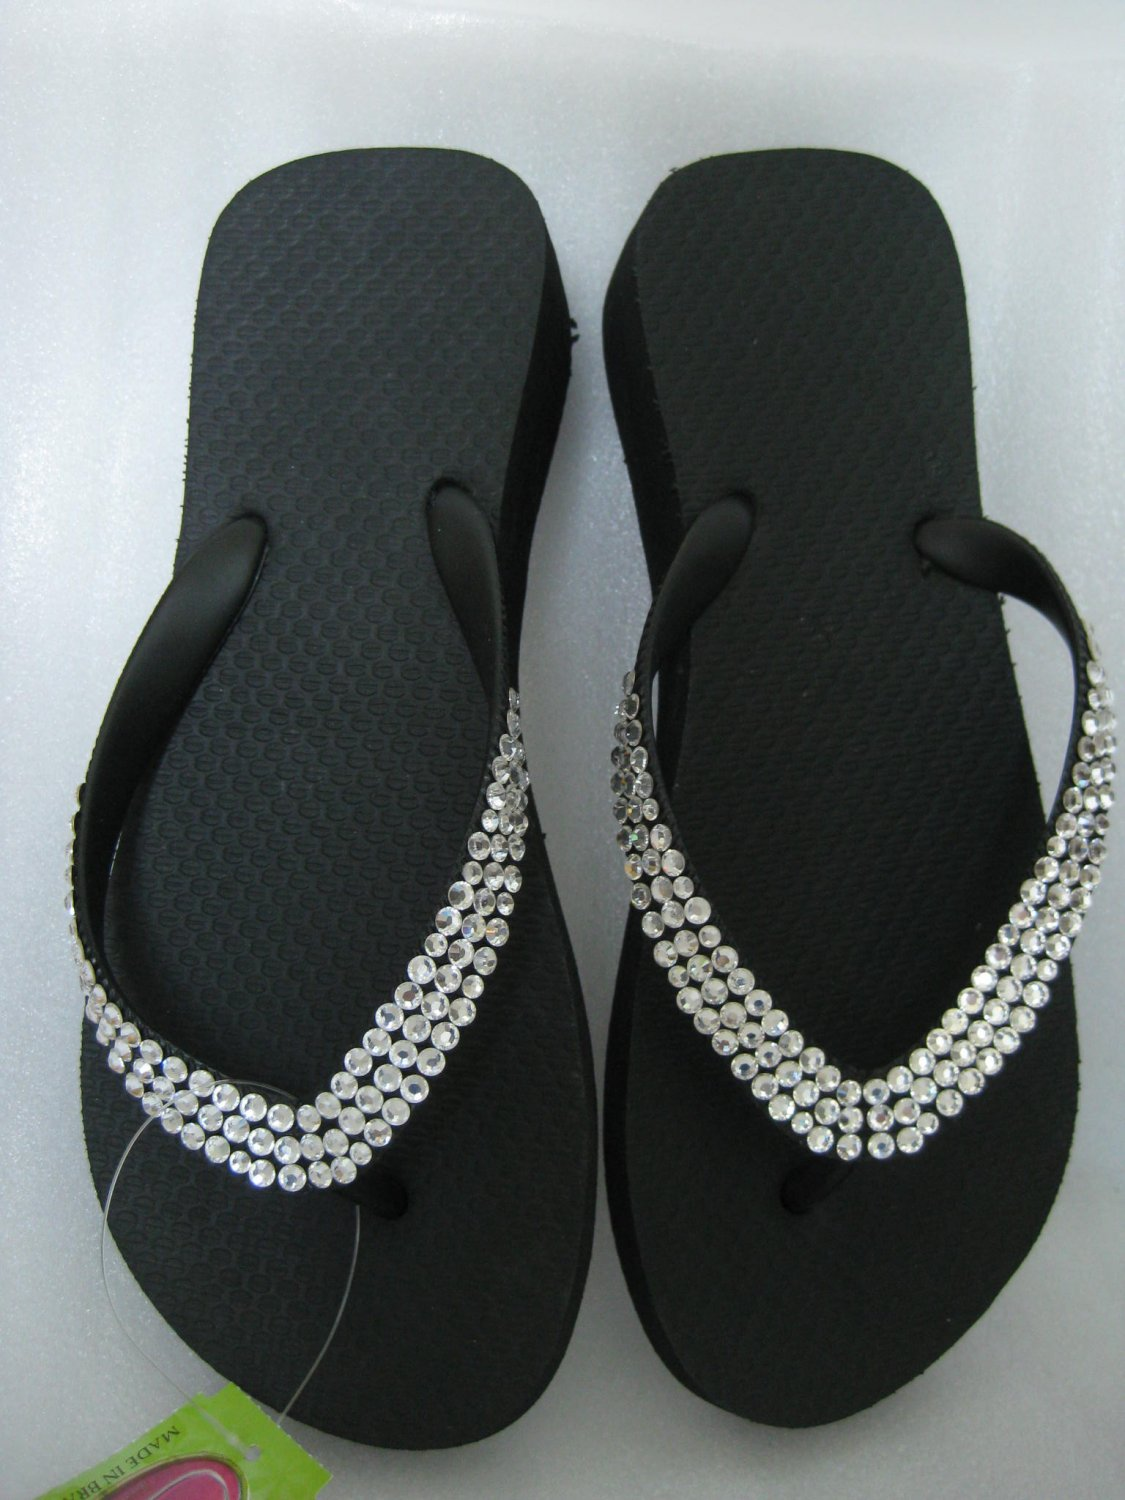 Embellished Swarovski Crystal wedge flip flops Black White Sz 7